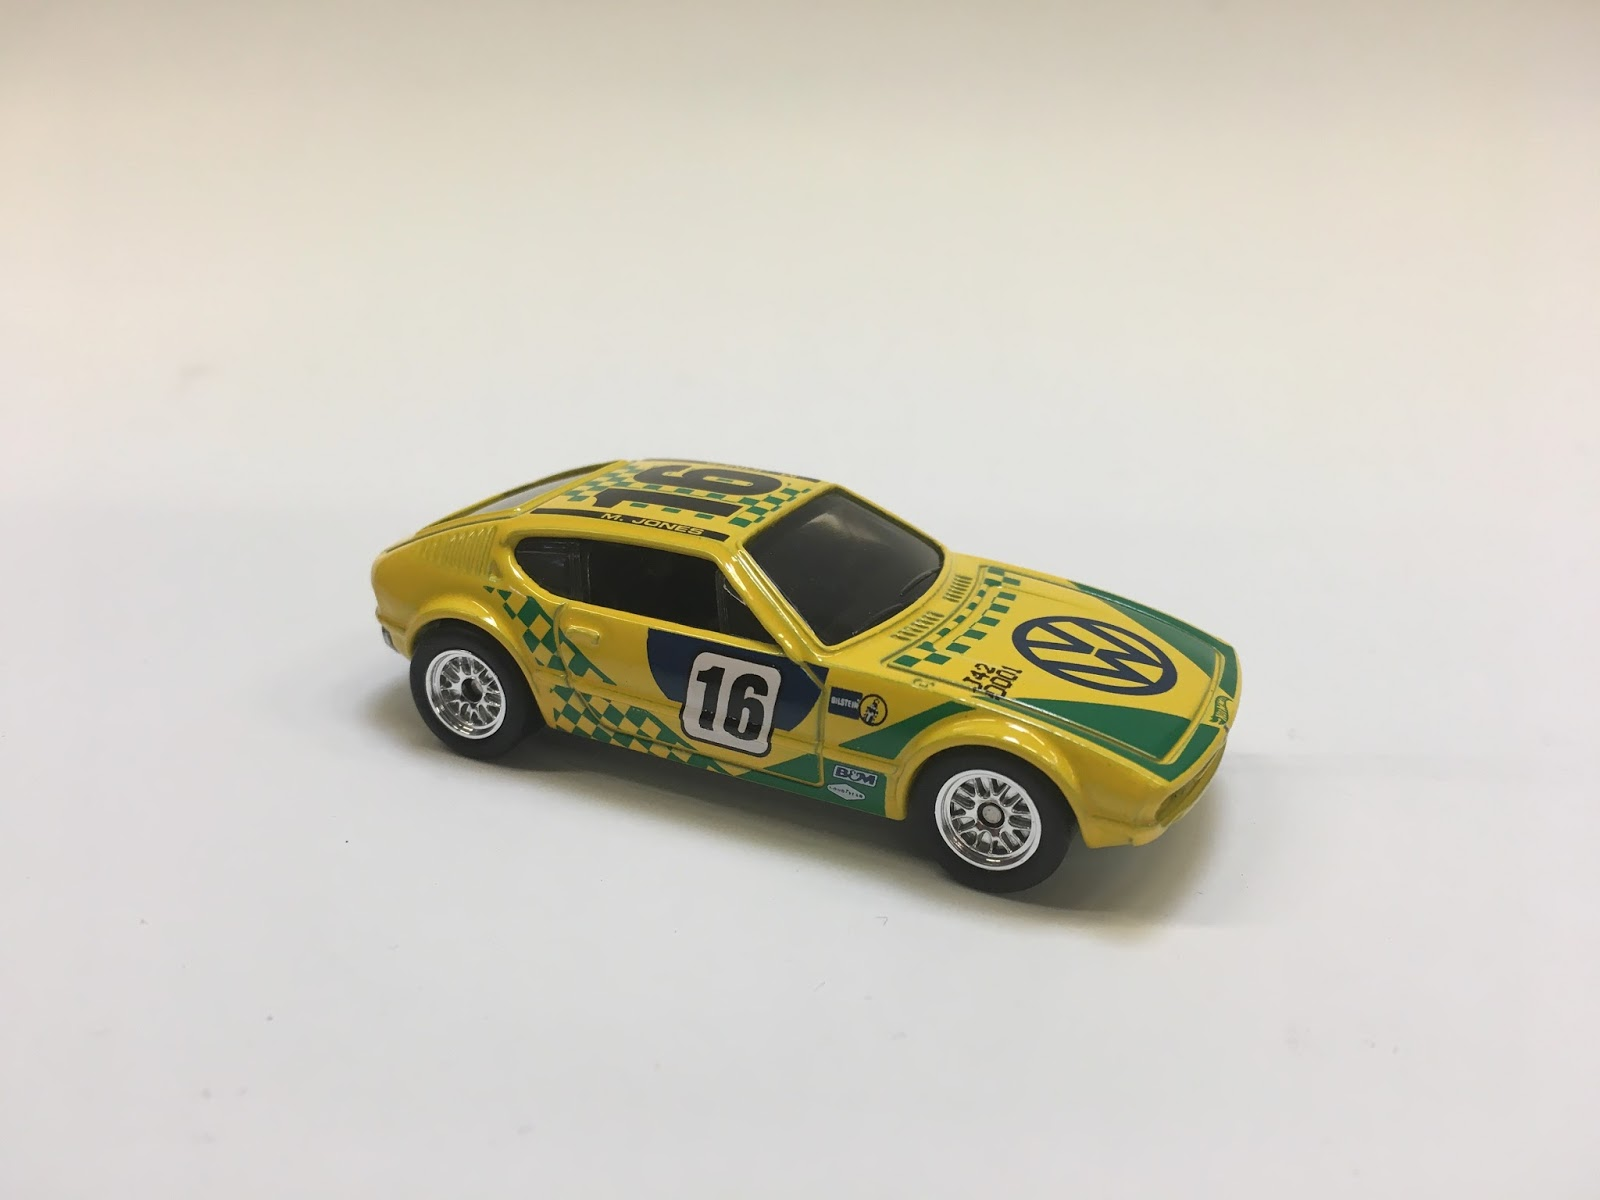 HOT WHEELS AIR-COOLED VOLKSWAGEN SP2